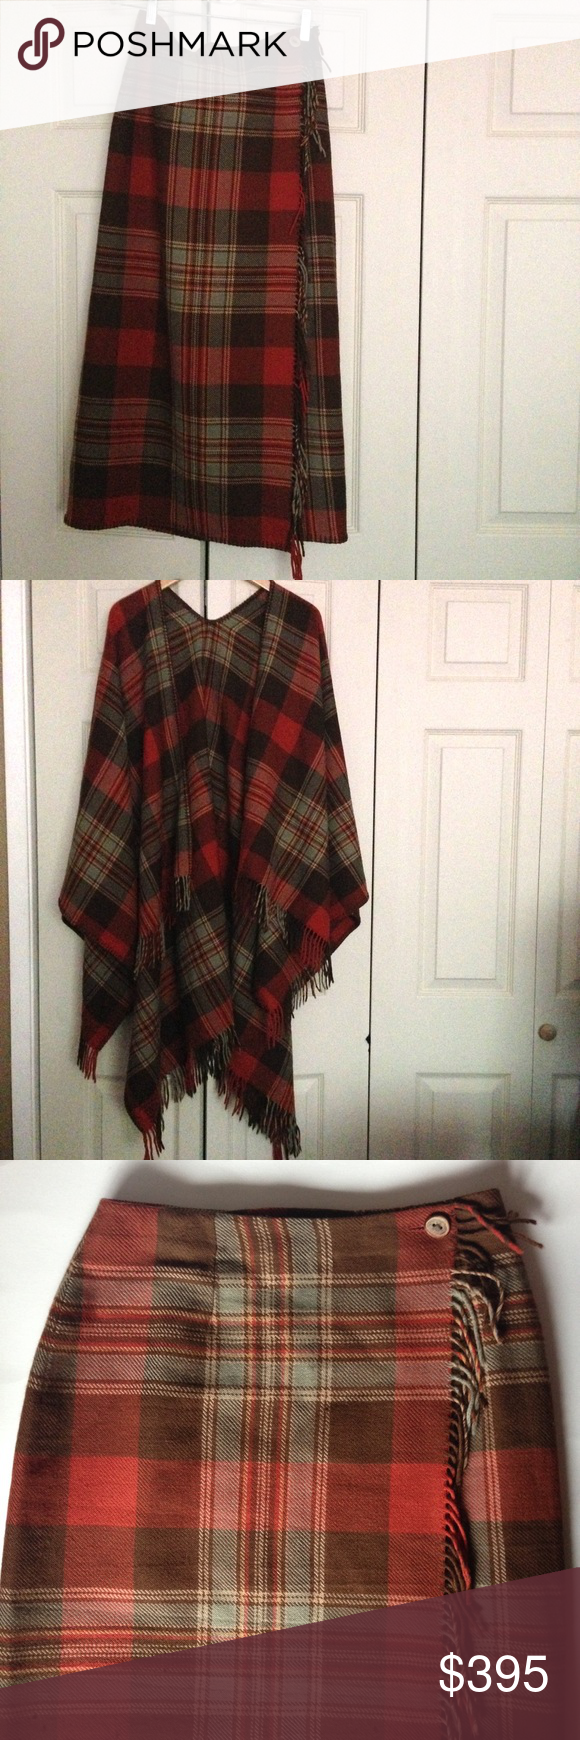 Vintage Ralph Lauren Country Skirt and Wrap Gorgeous Vintage Ralph Lauren Country Wool Plaid Wrap Skirt and Wrap/Scarf Set. Very Beautiful and Lovely. Wrap has Beautiful Wood Button and Fringe Down Length. Stitched at Bottom Edge for Added Detail. The Wrap Blanket Scarf adds More Richness to the Set. Fringe along the Edged. Gorgeous Plaid in Warm Earth Tones. This is an Exceptional Set. Classic Ralph Lauren. Perfect for theses Colder Days.❤️ Ralph Lauren Country Skirts Maxi